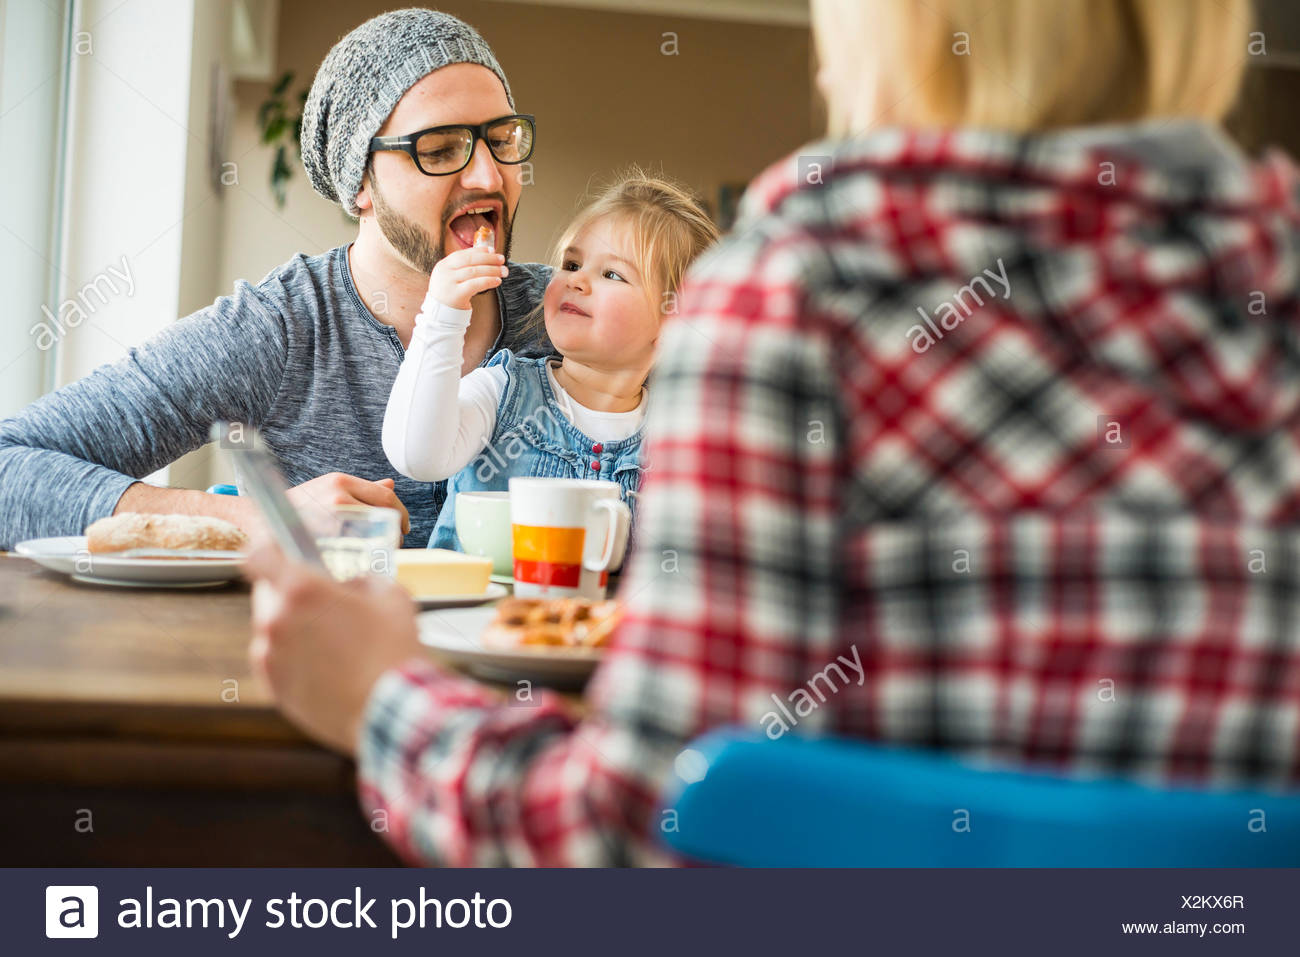 Daughter feeding father at dining table - Stock Image